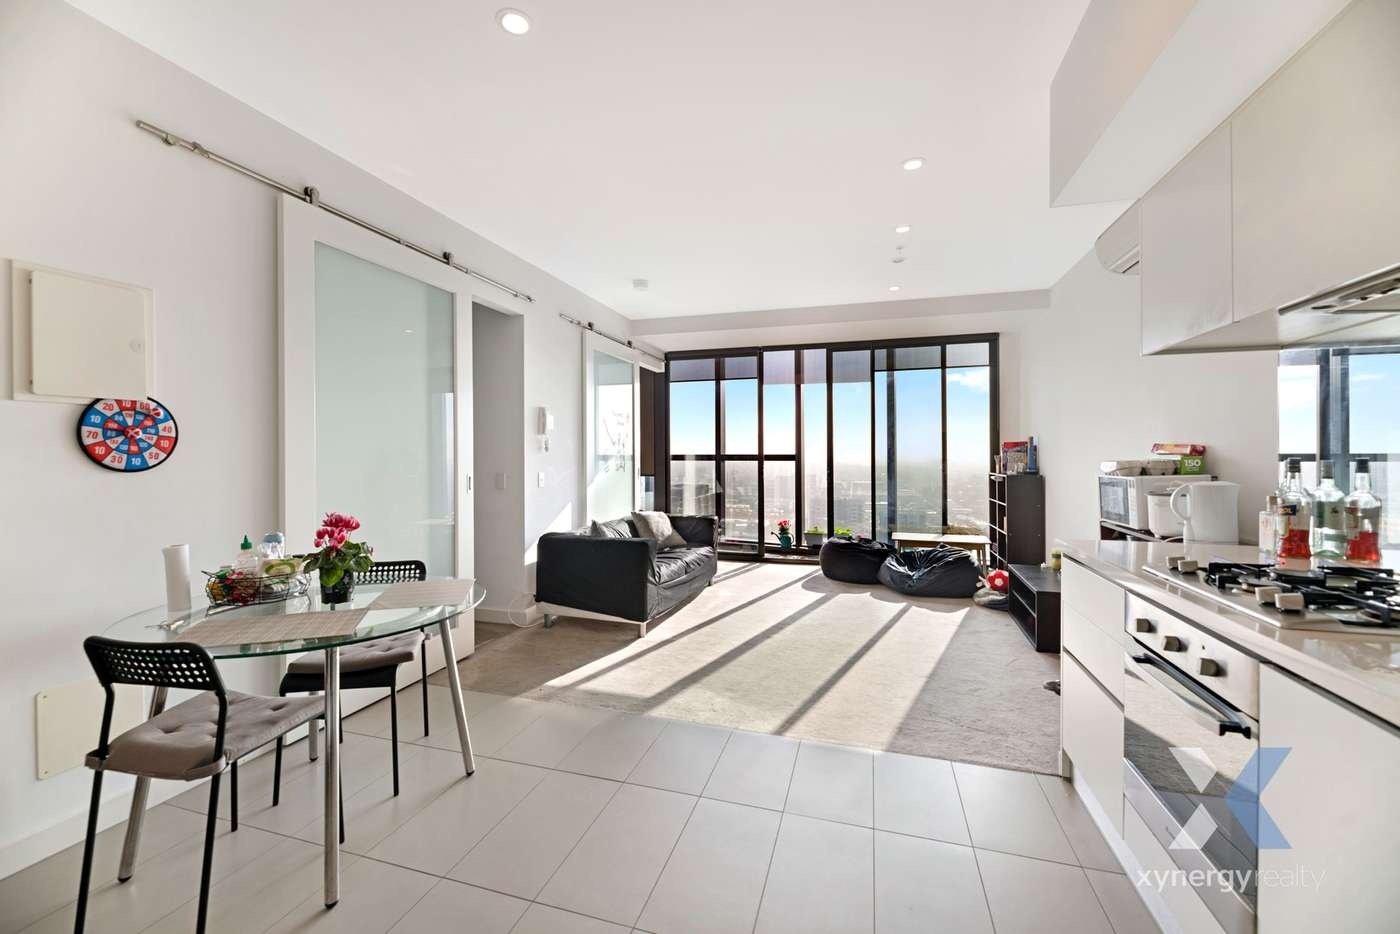 Main view of Homely apartment listing, 1805/35 Malcolm Street, South Yarra VIC 3141